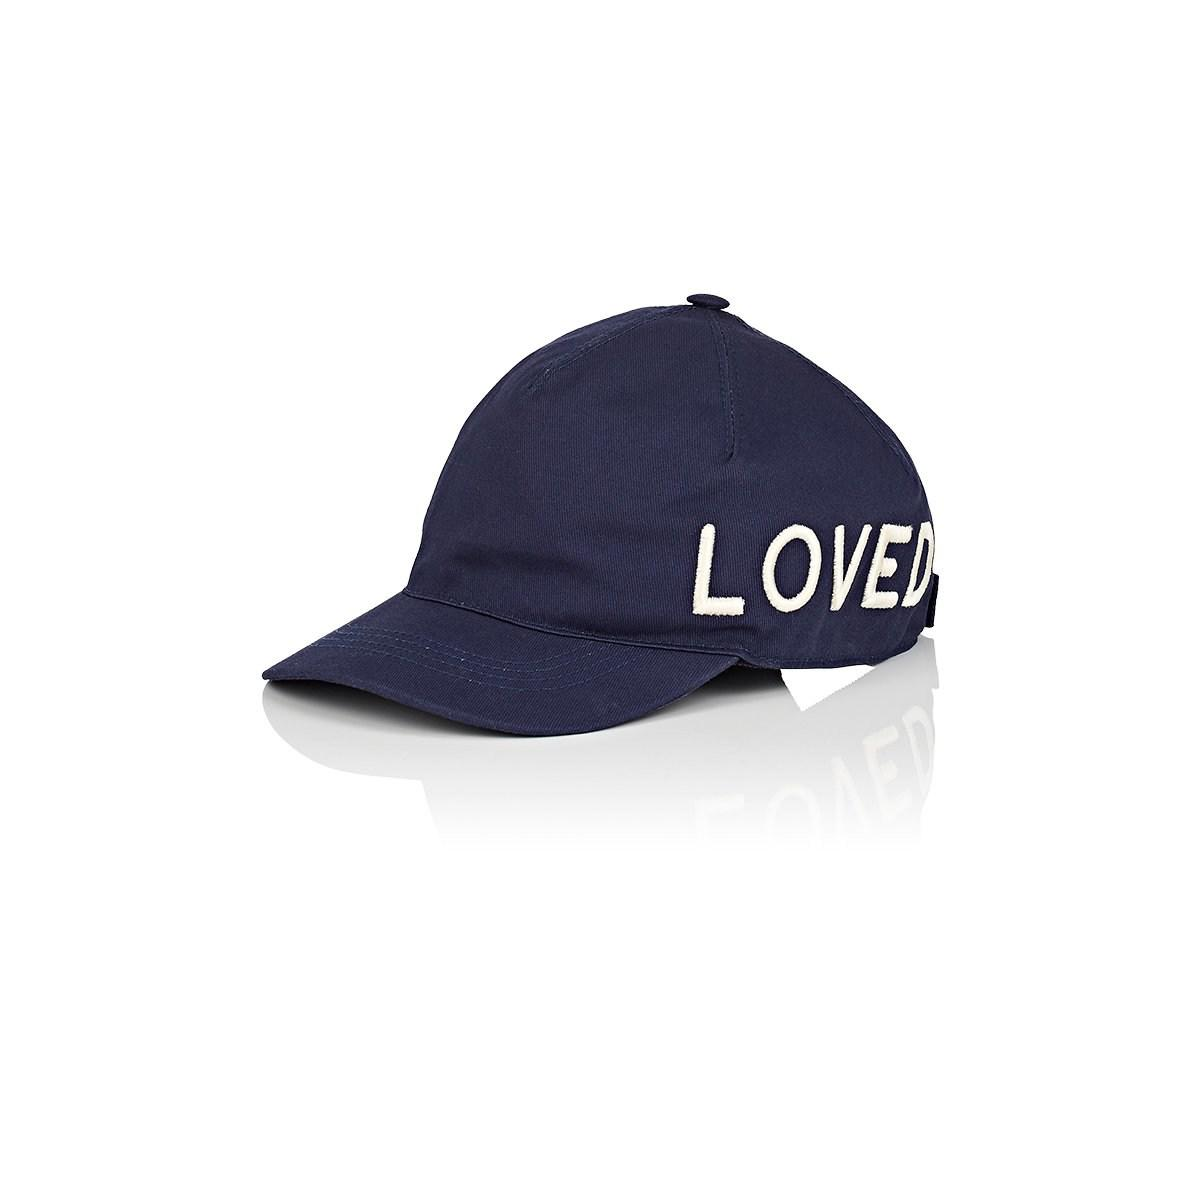 Lyst - Gucci loved Cotton Baseball Cap in Blue for Men 6ce6bea5583